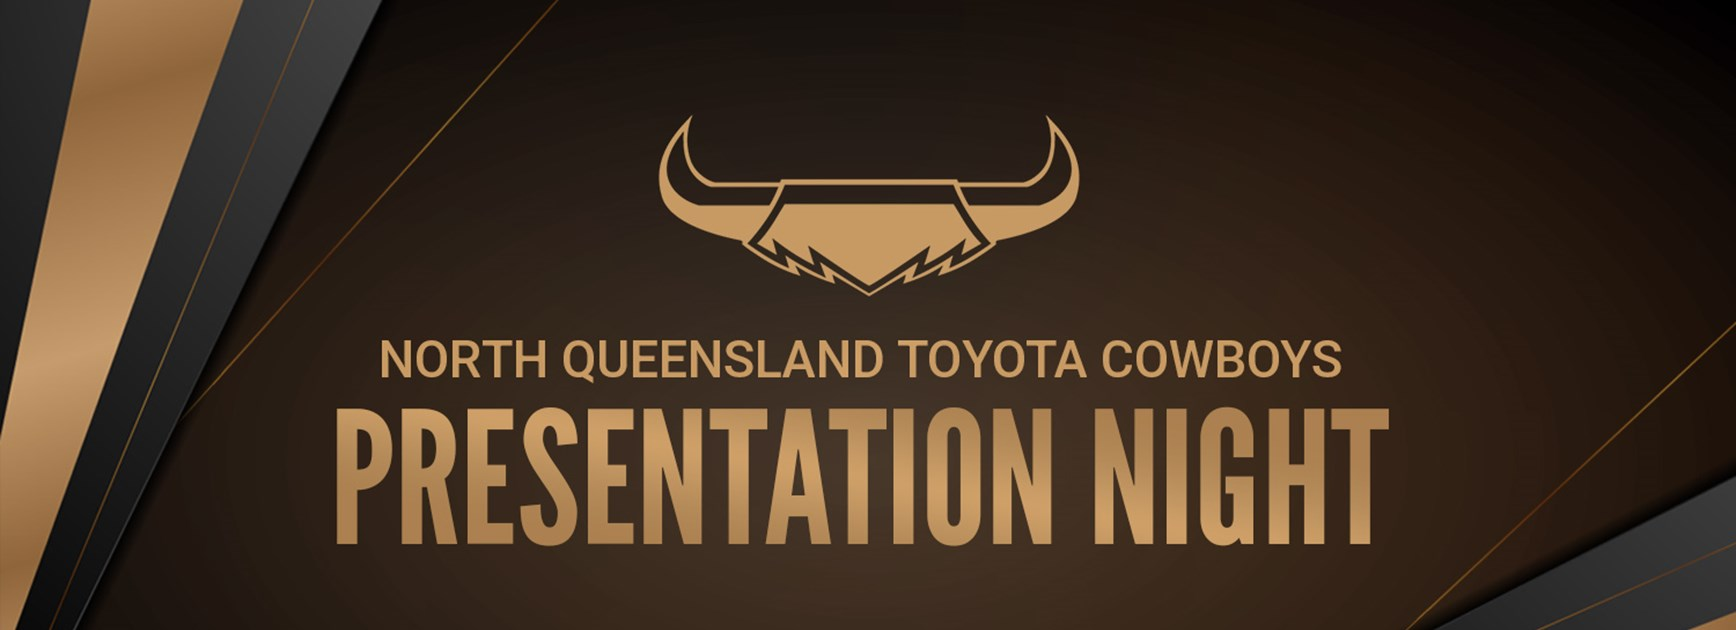 2019 Presentation Night: Live Updates